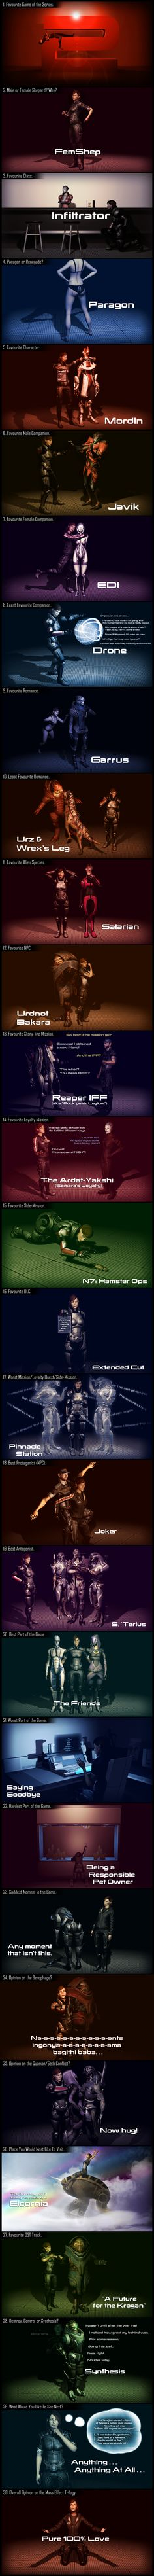 30 Day Mass Effect Challenge by Lordess-Alicia.deviantart.com on @deviantART